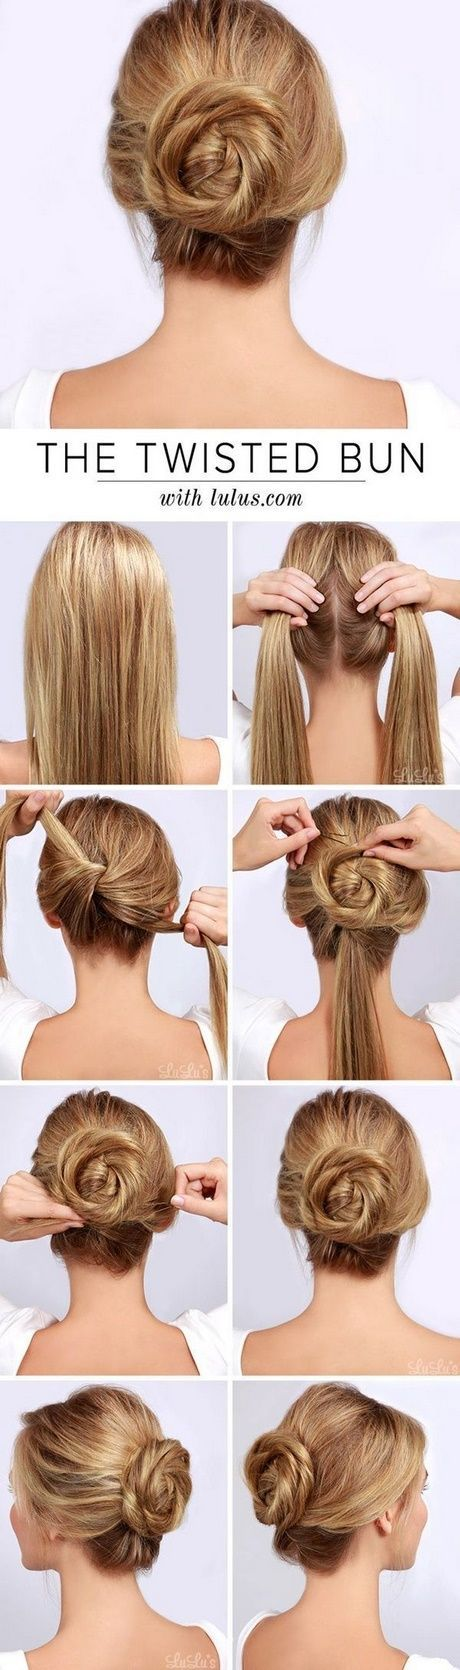 Simple Hairstyles For Every Day Hair Alltag Lockerefrisuren Beautiful Schnel Easy Hair Style Frisuren Frisur Hochgesteckt Frisur Ideen